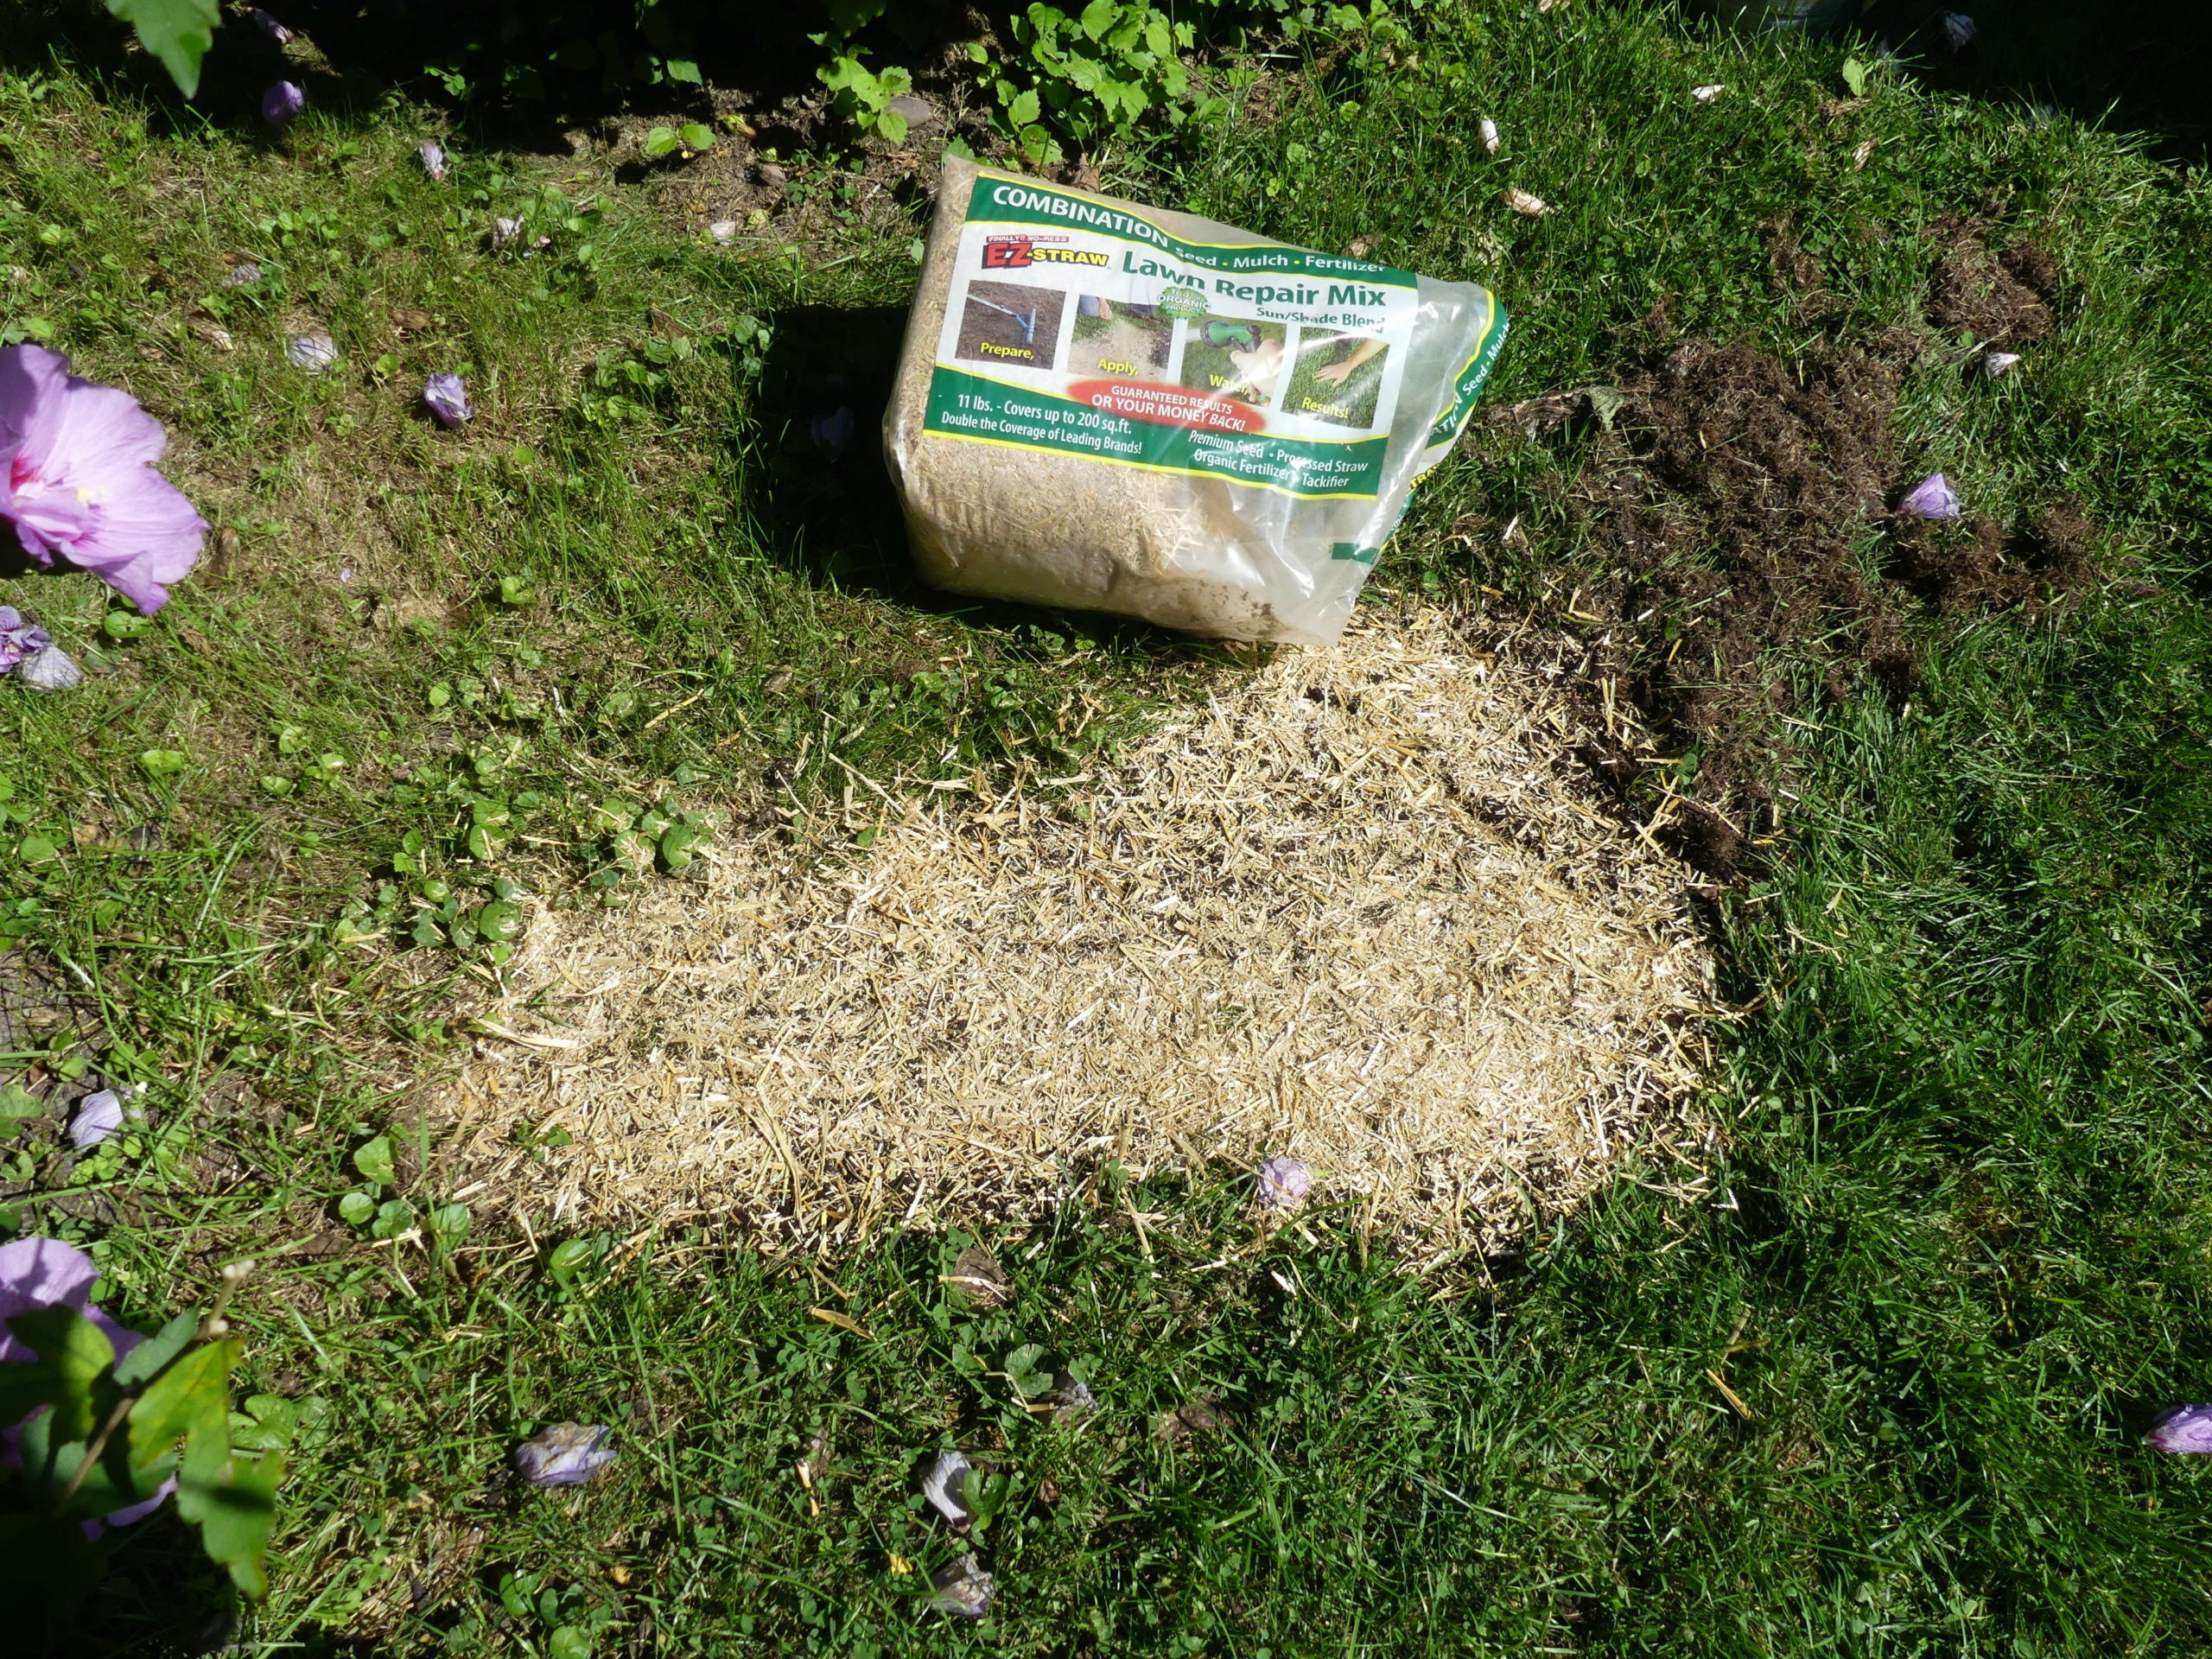 All-in-one lawn patch products that contain seed, mulch and fertilizer are available but rarely have quality seed and you can't choose what seed is in the mix.